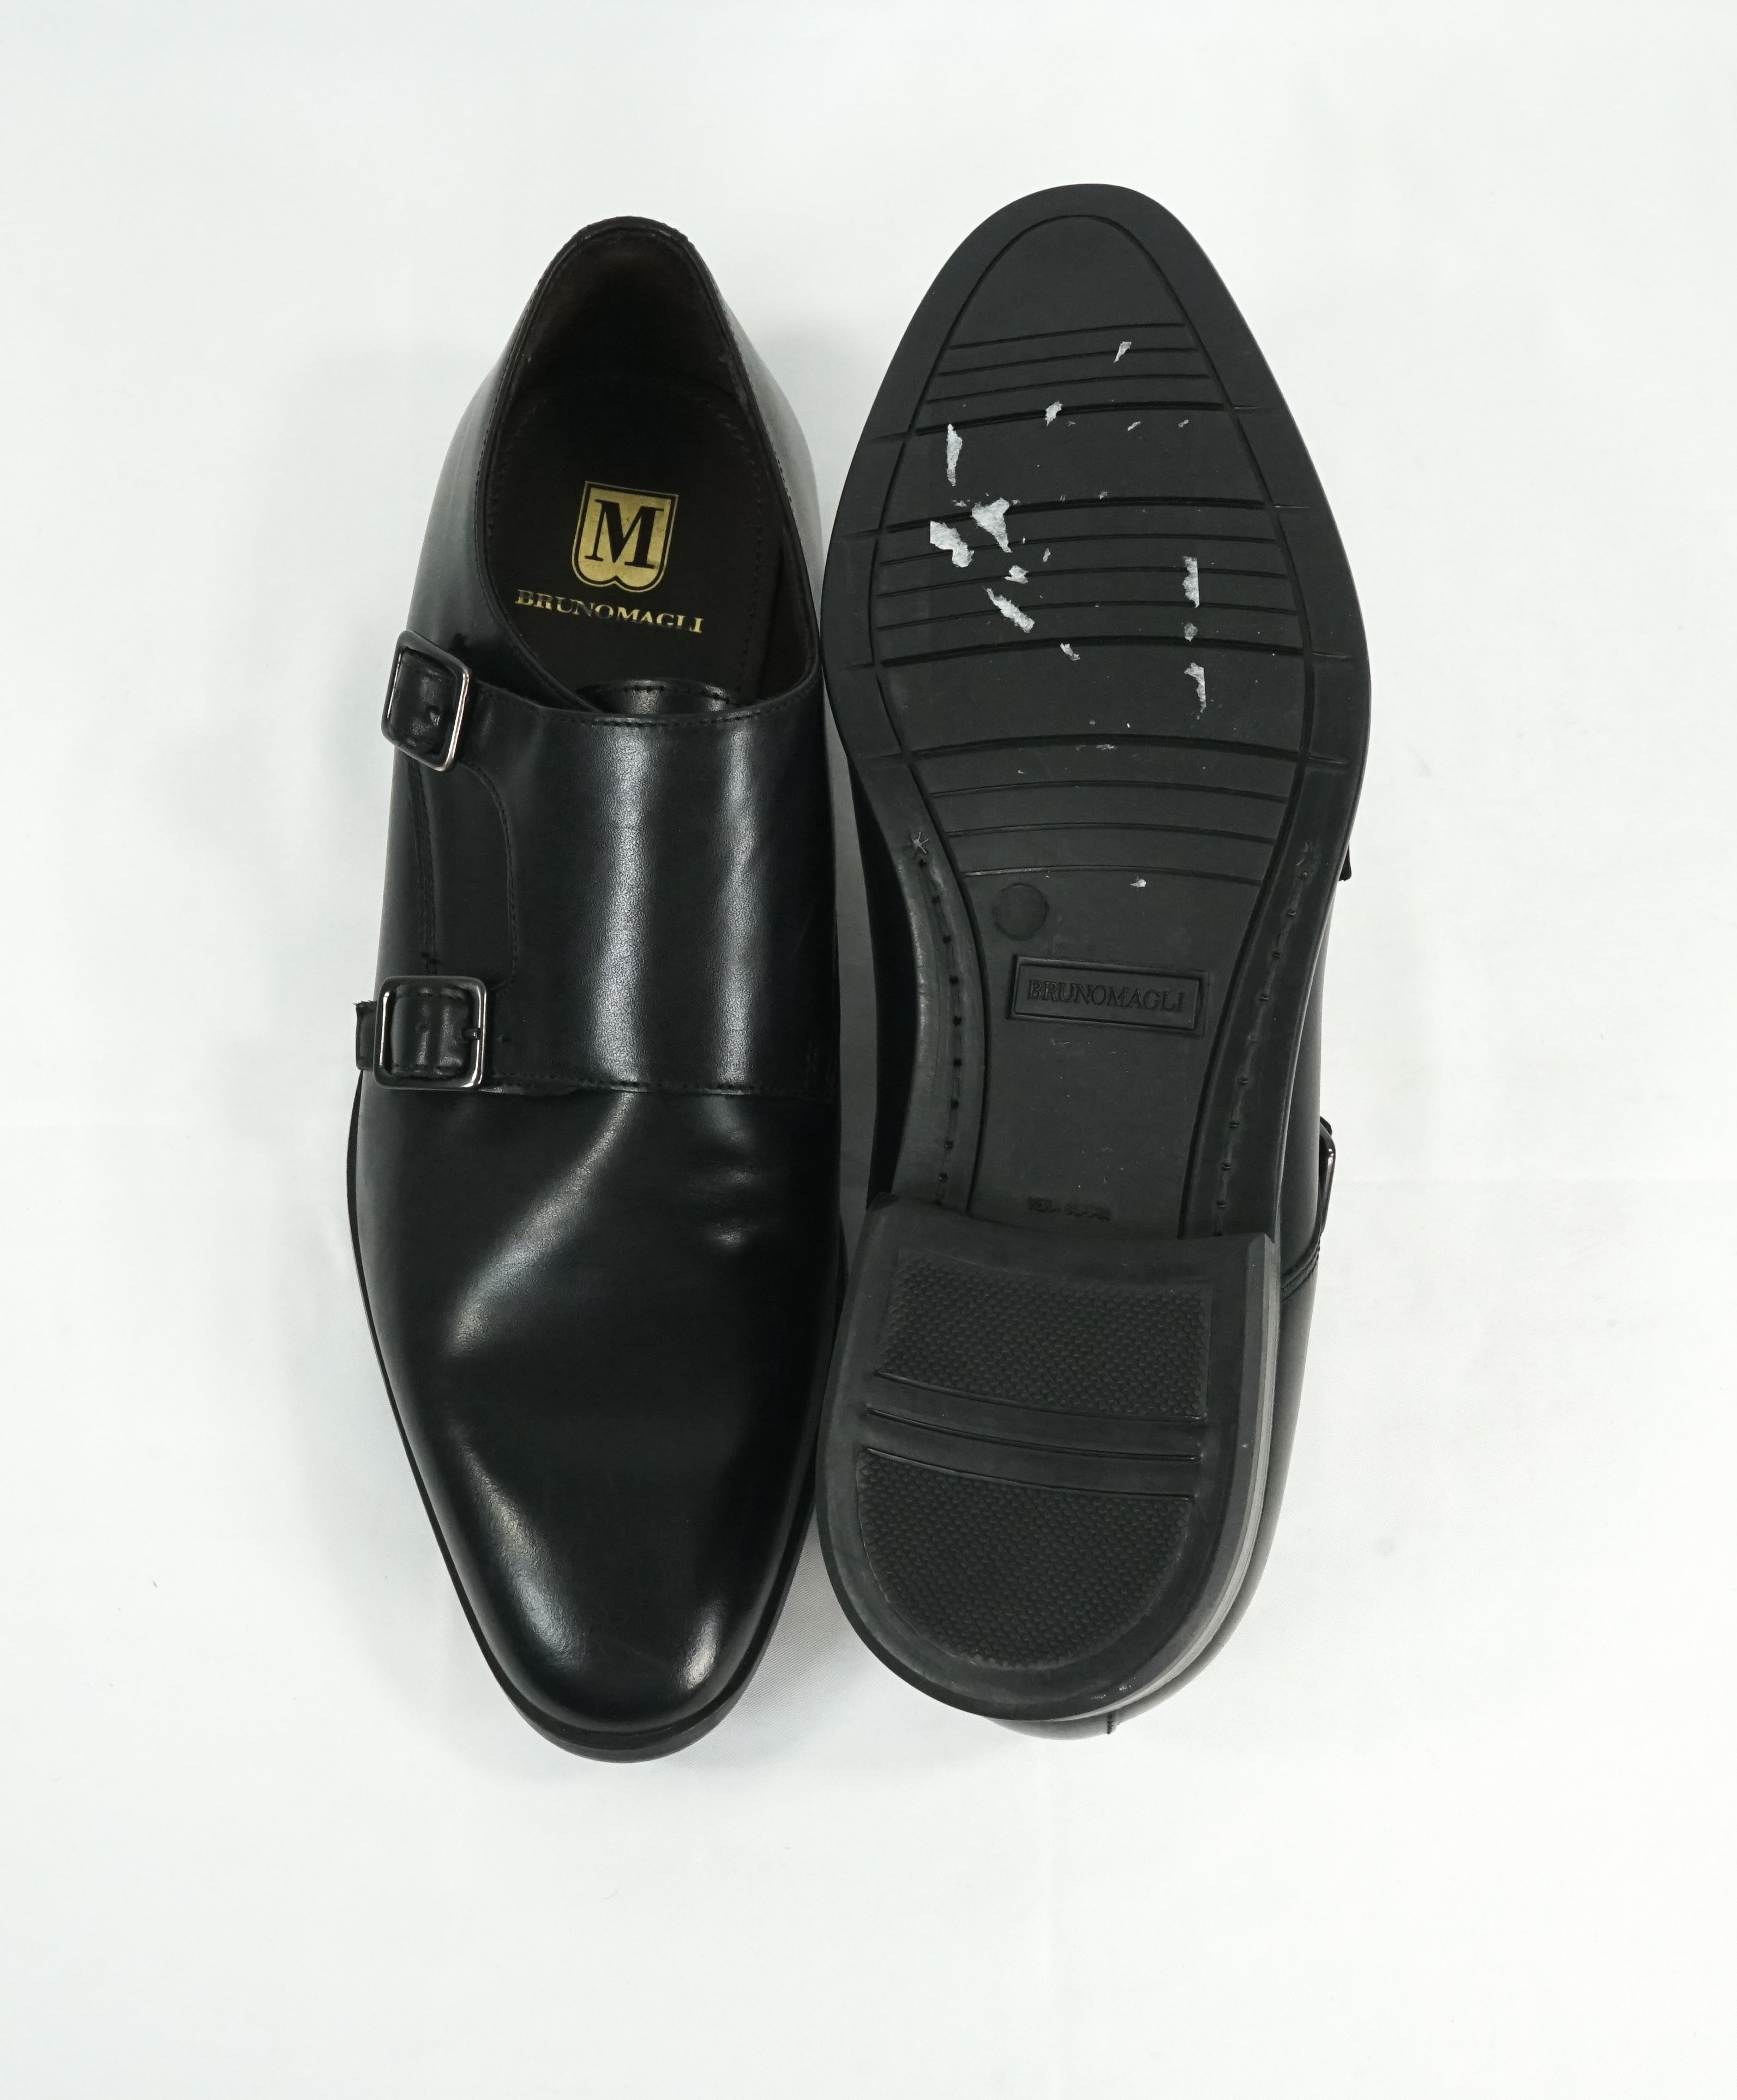 BRUNO MAGLI - Black Sleek Double Monk Strap Loafers - 9